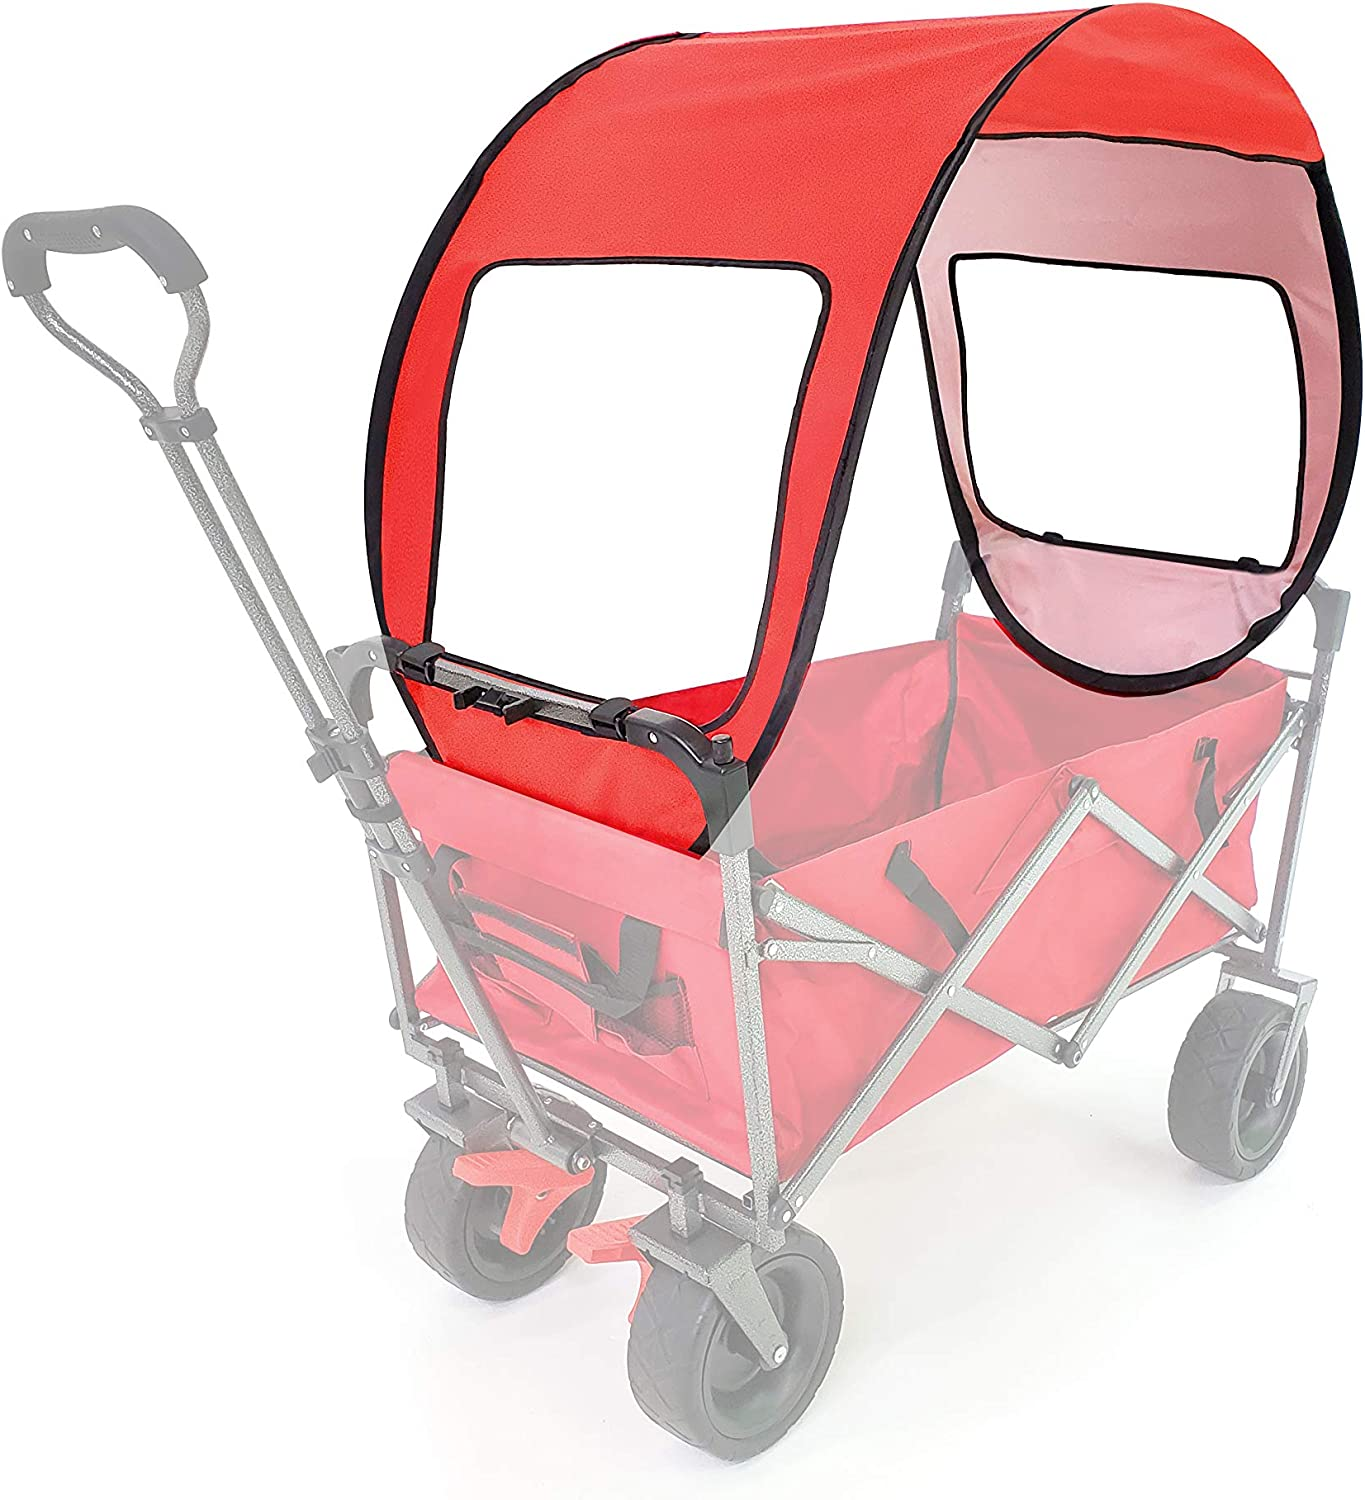 Brookfield Products Wagon Canopy Cover for Collapsible Wagons, Folding Wagon Carts Cover, Utility Wagon Canopy, Kids Wagon Canopy, Outdoor Garden Beach Wagon Cover